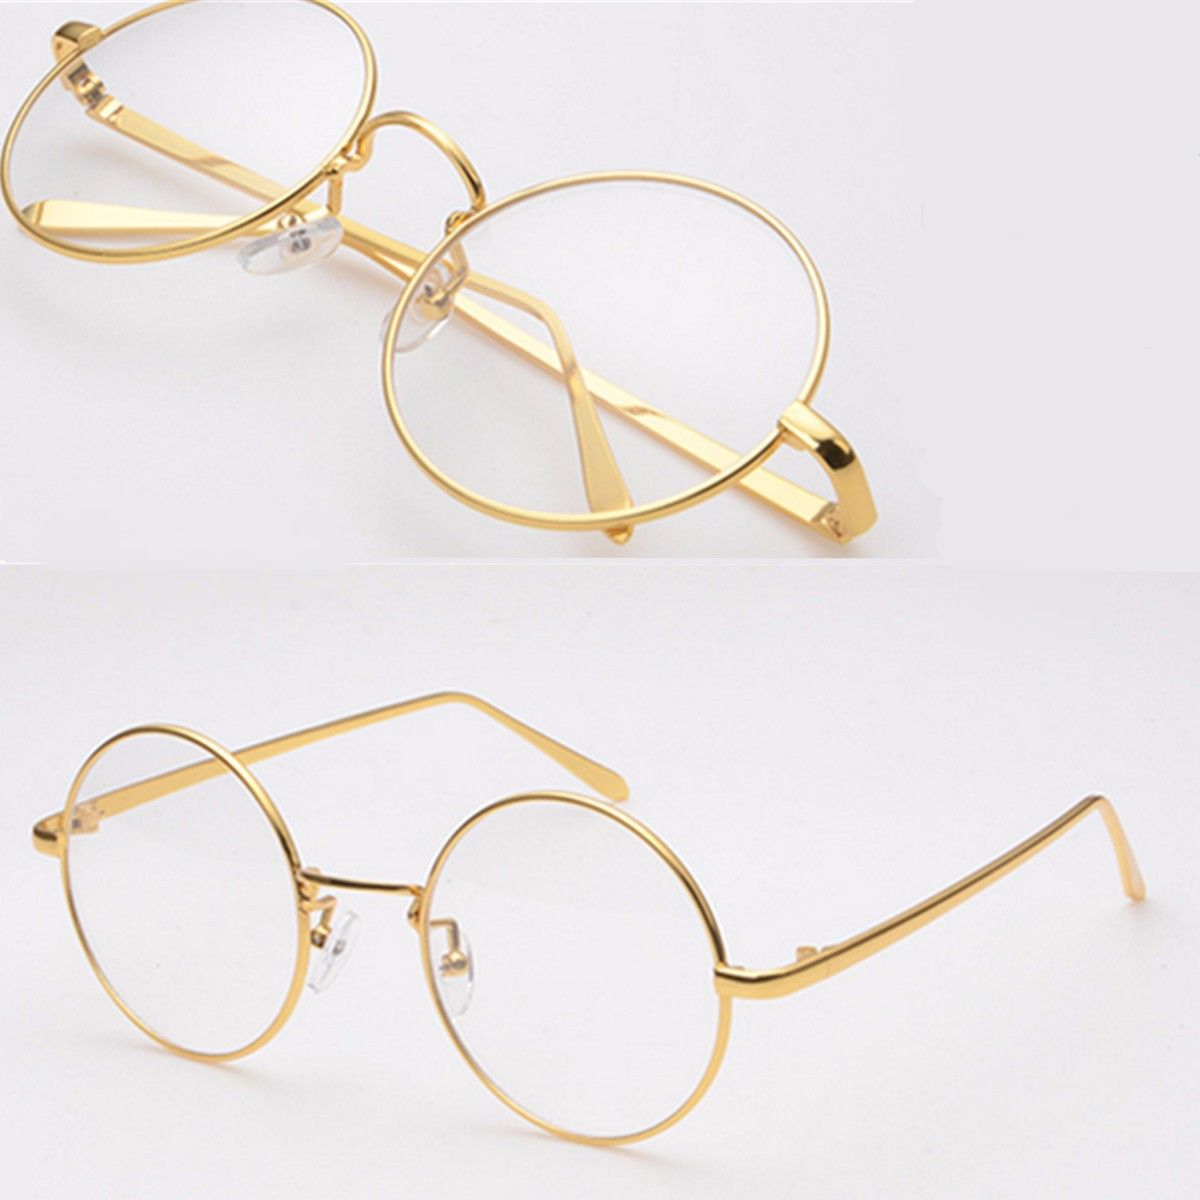 e45bcc917d4 GOLD Metal Vintage Round Eyeglass Frame Clear Lens Full-Rim Glasses ...